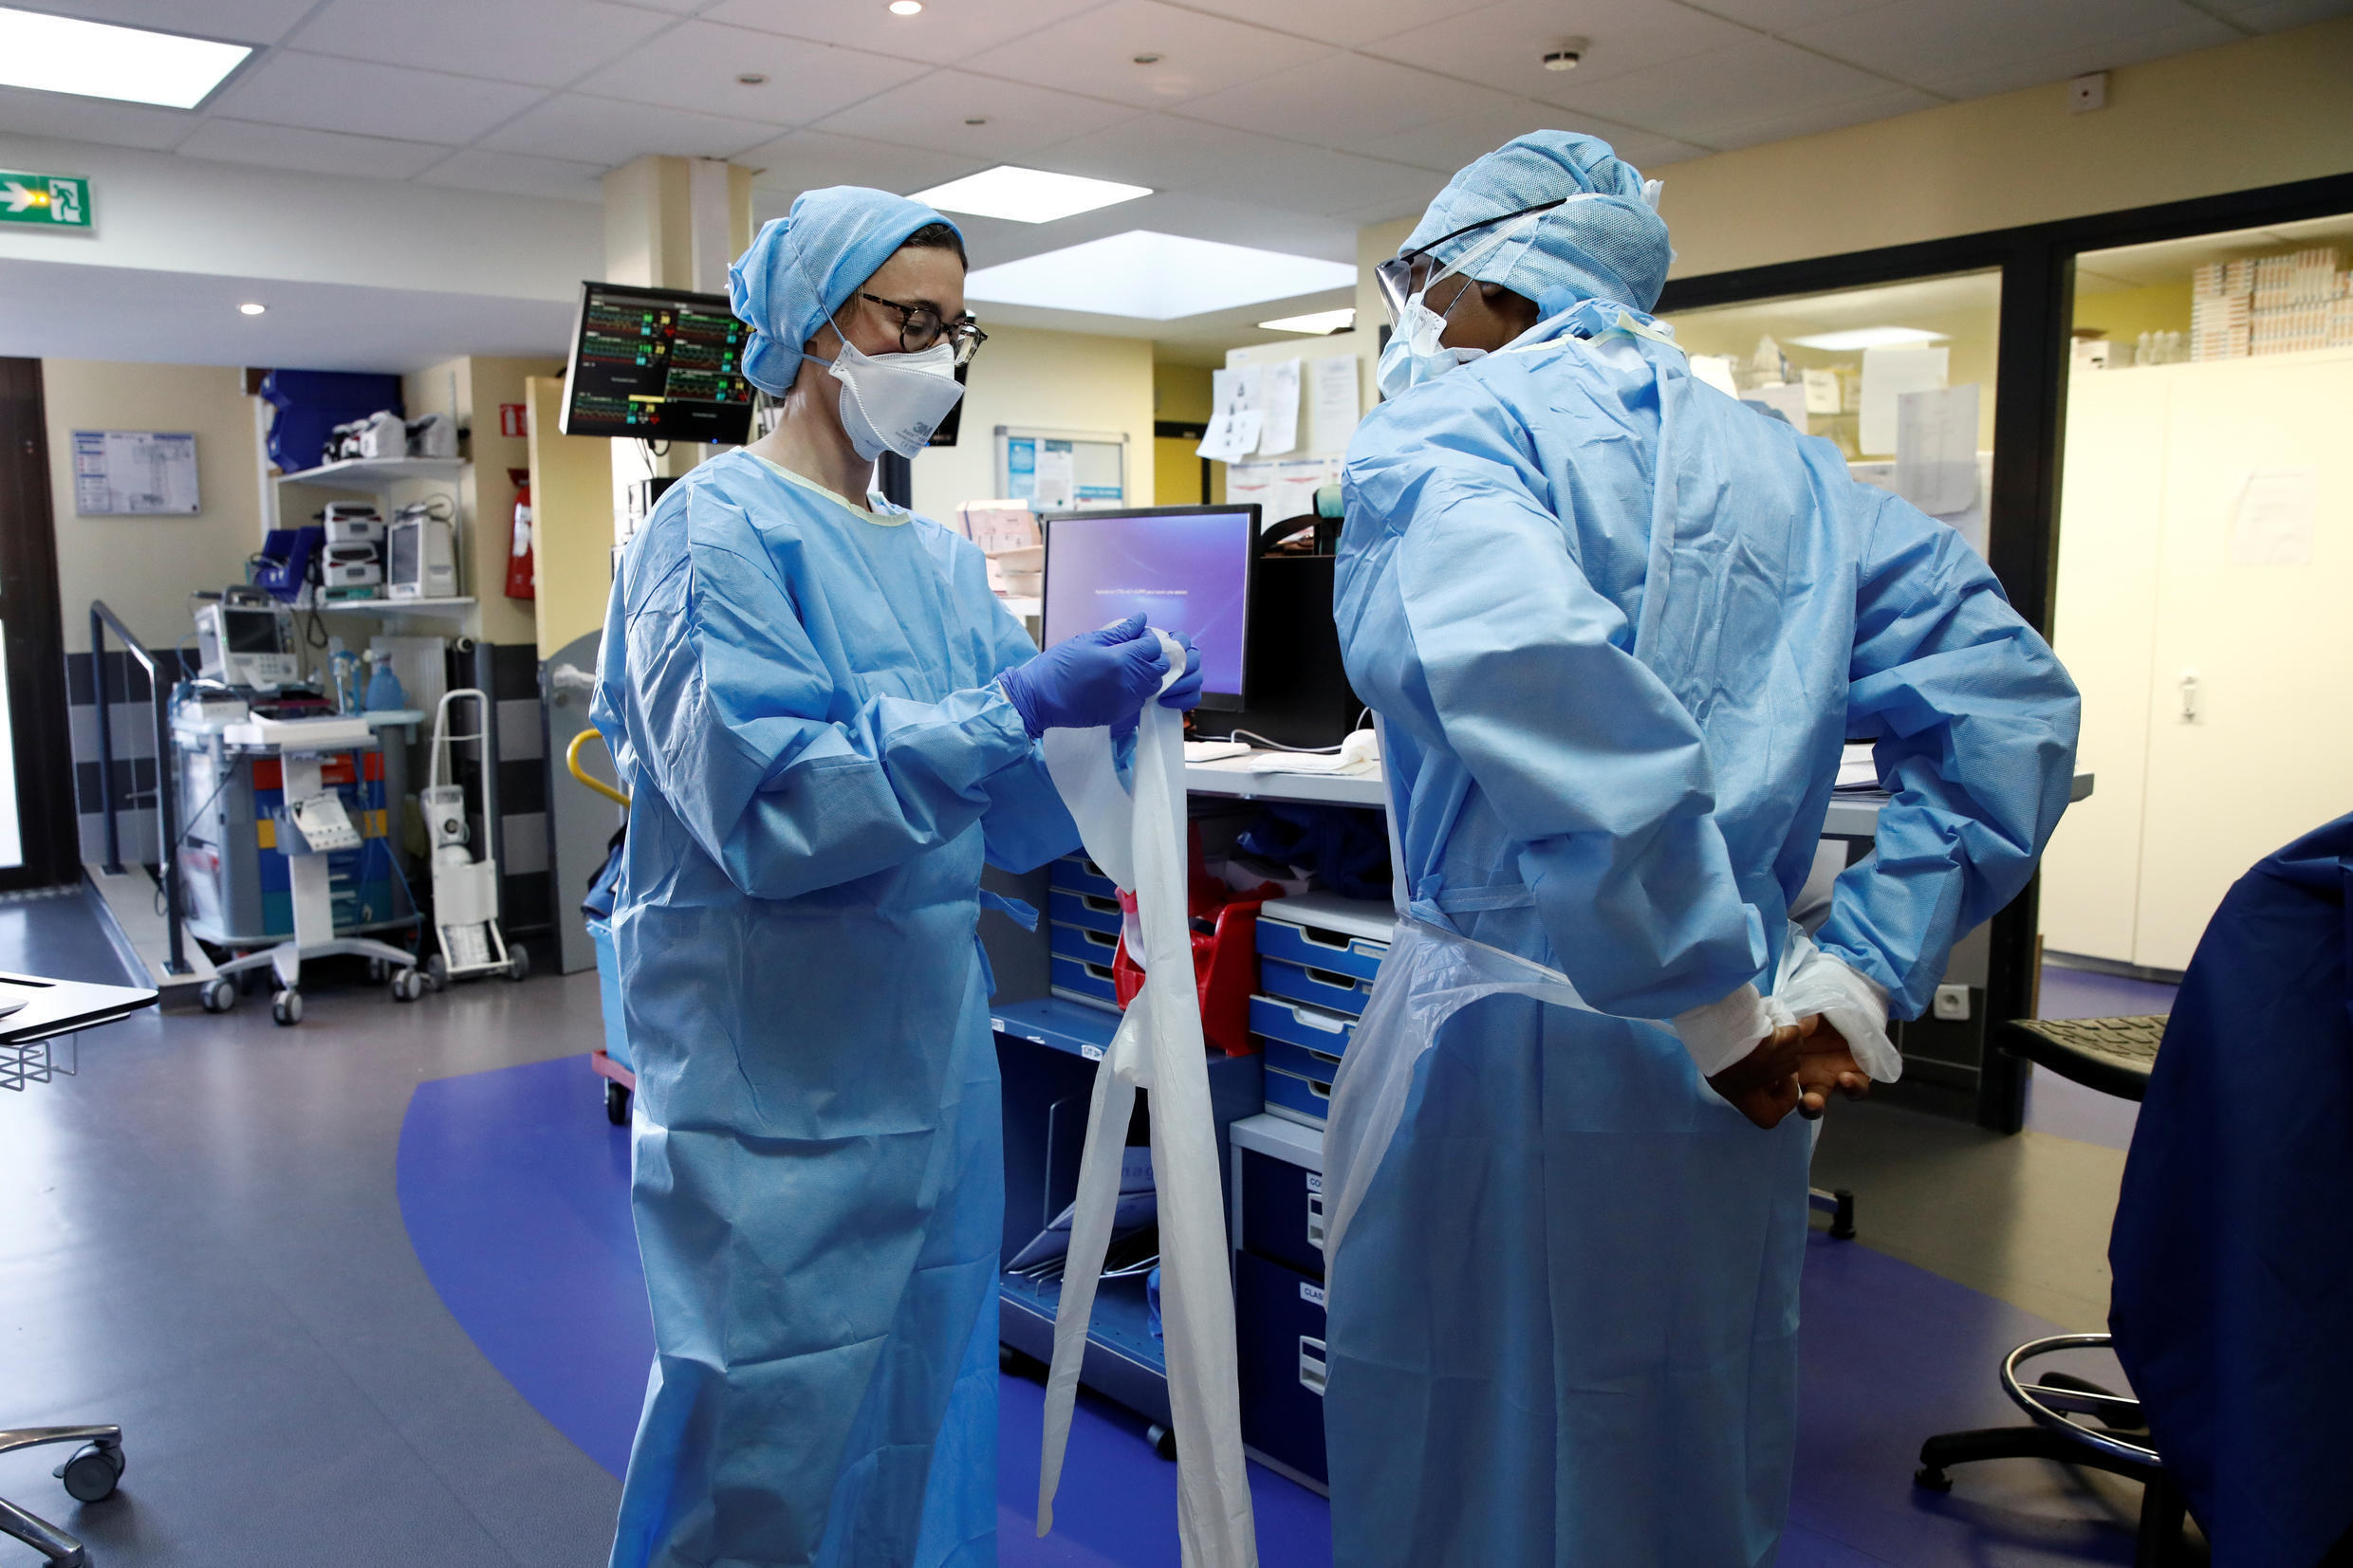 Medical staff, wearing protective suits and face masks, work in an intensive care unit for coronavirus disease (Covid-19) patients at the Franco-Britannique hospital in Levallois-Perret near Paris as the spread of the coronavirus disease continues in France, on April 15, 2020.